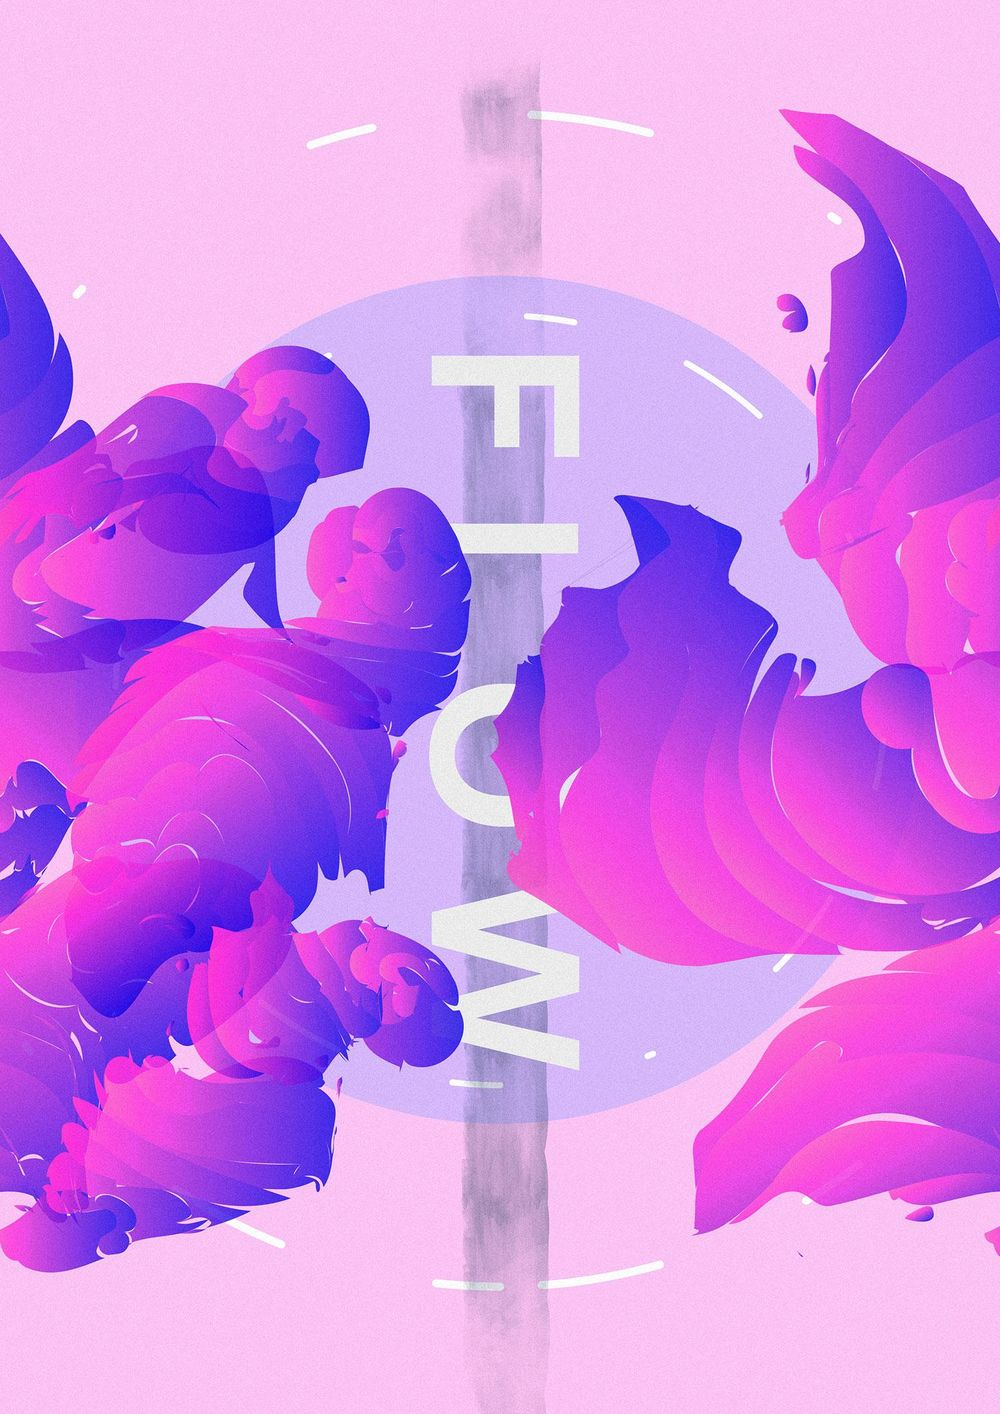 Flow - image 1 - student project